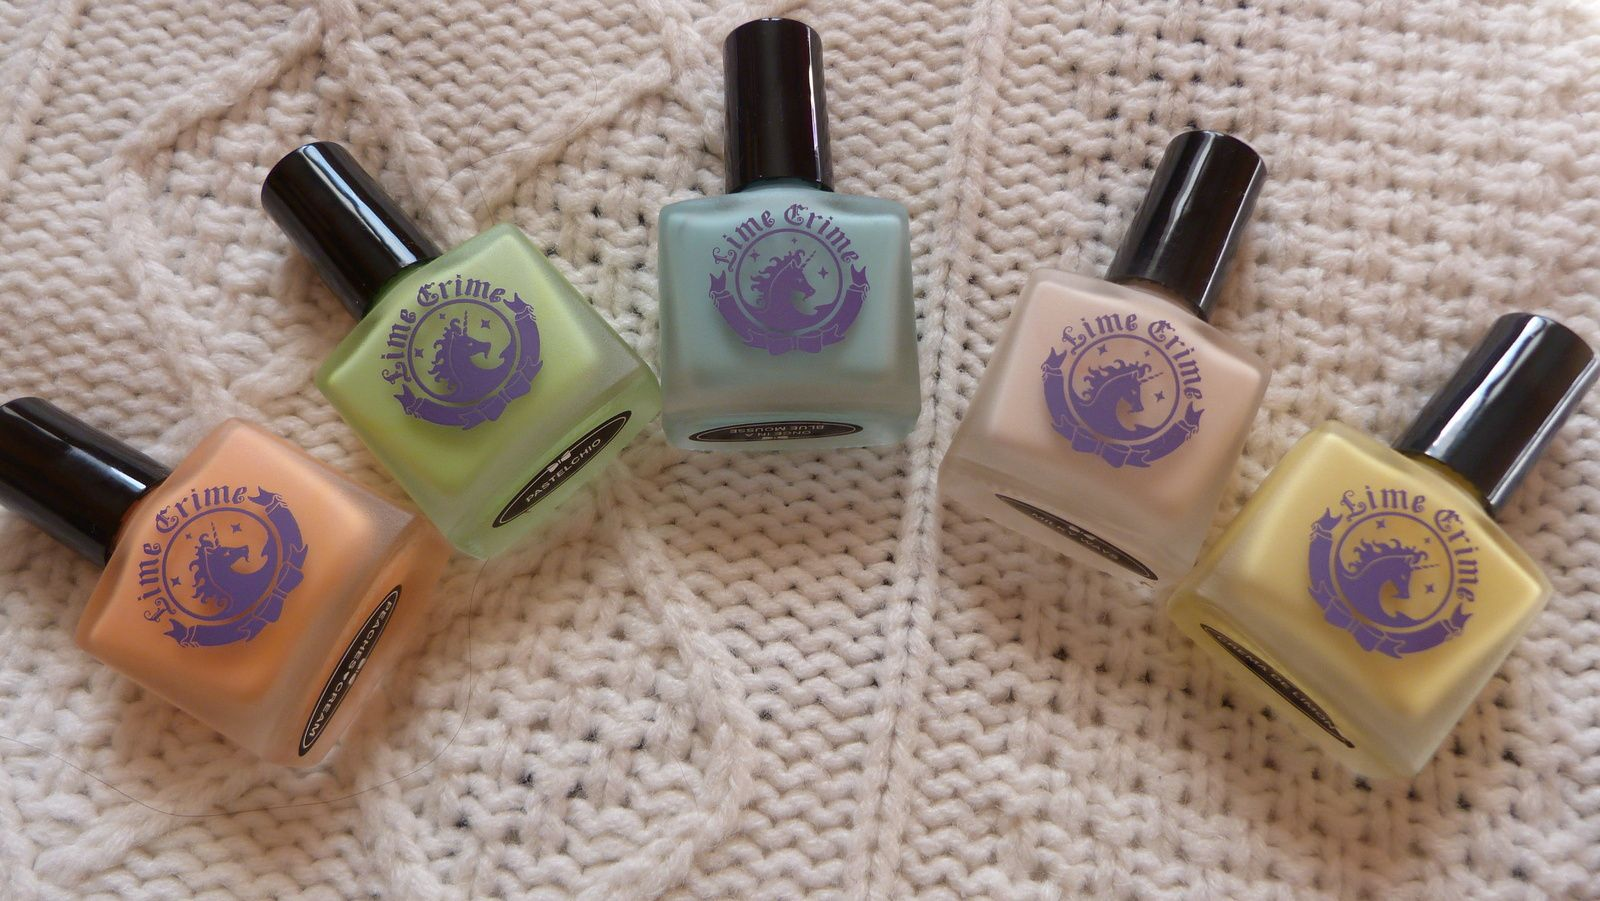 Collection Lime Crime